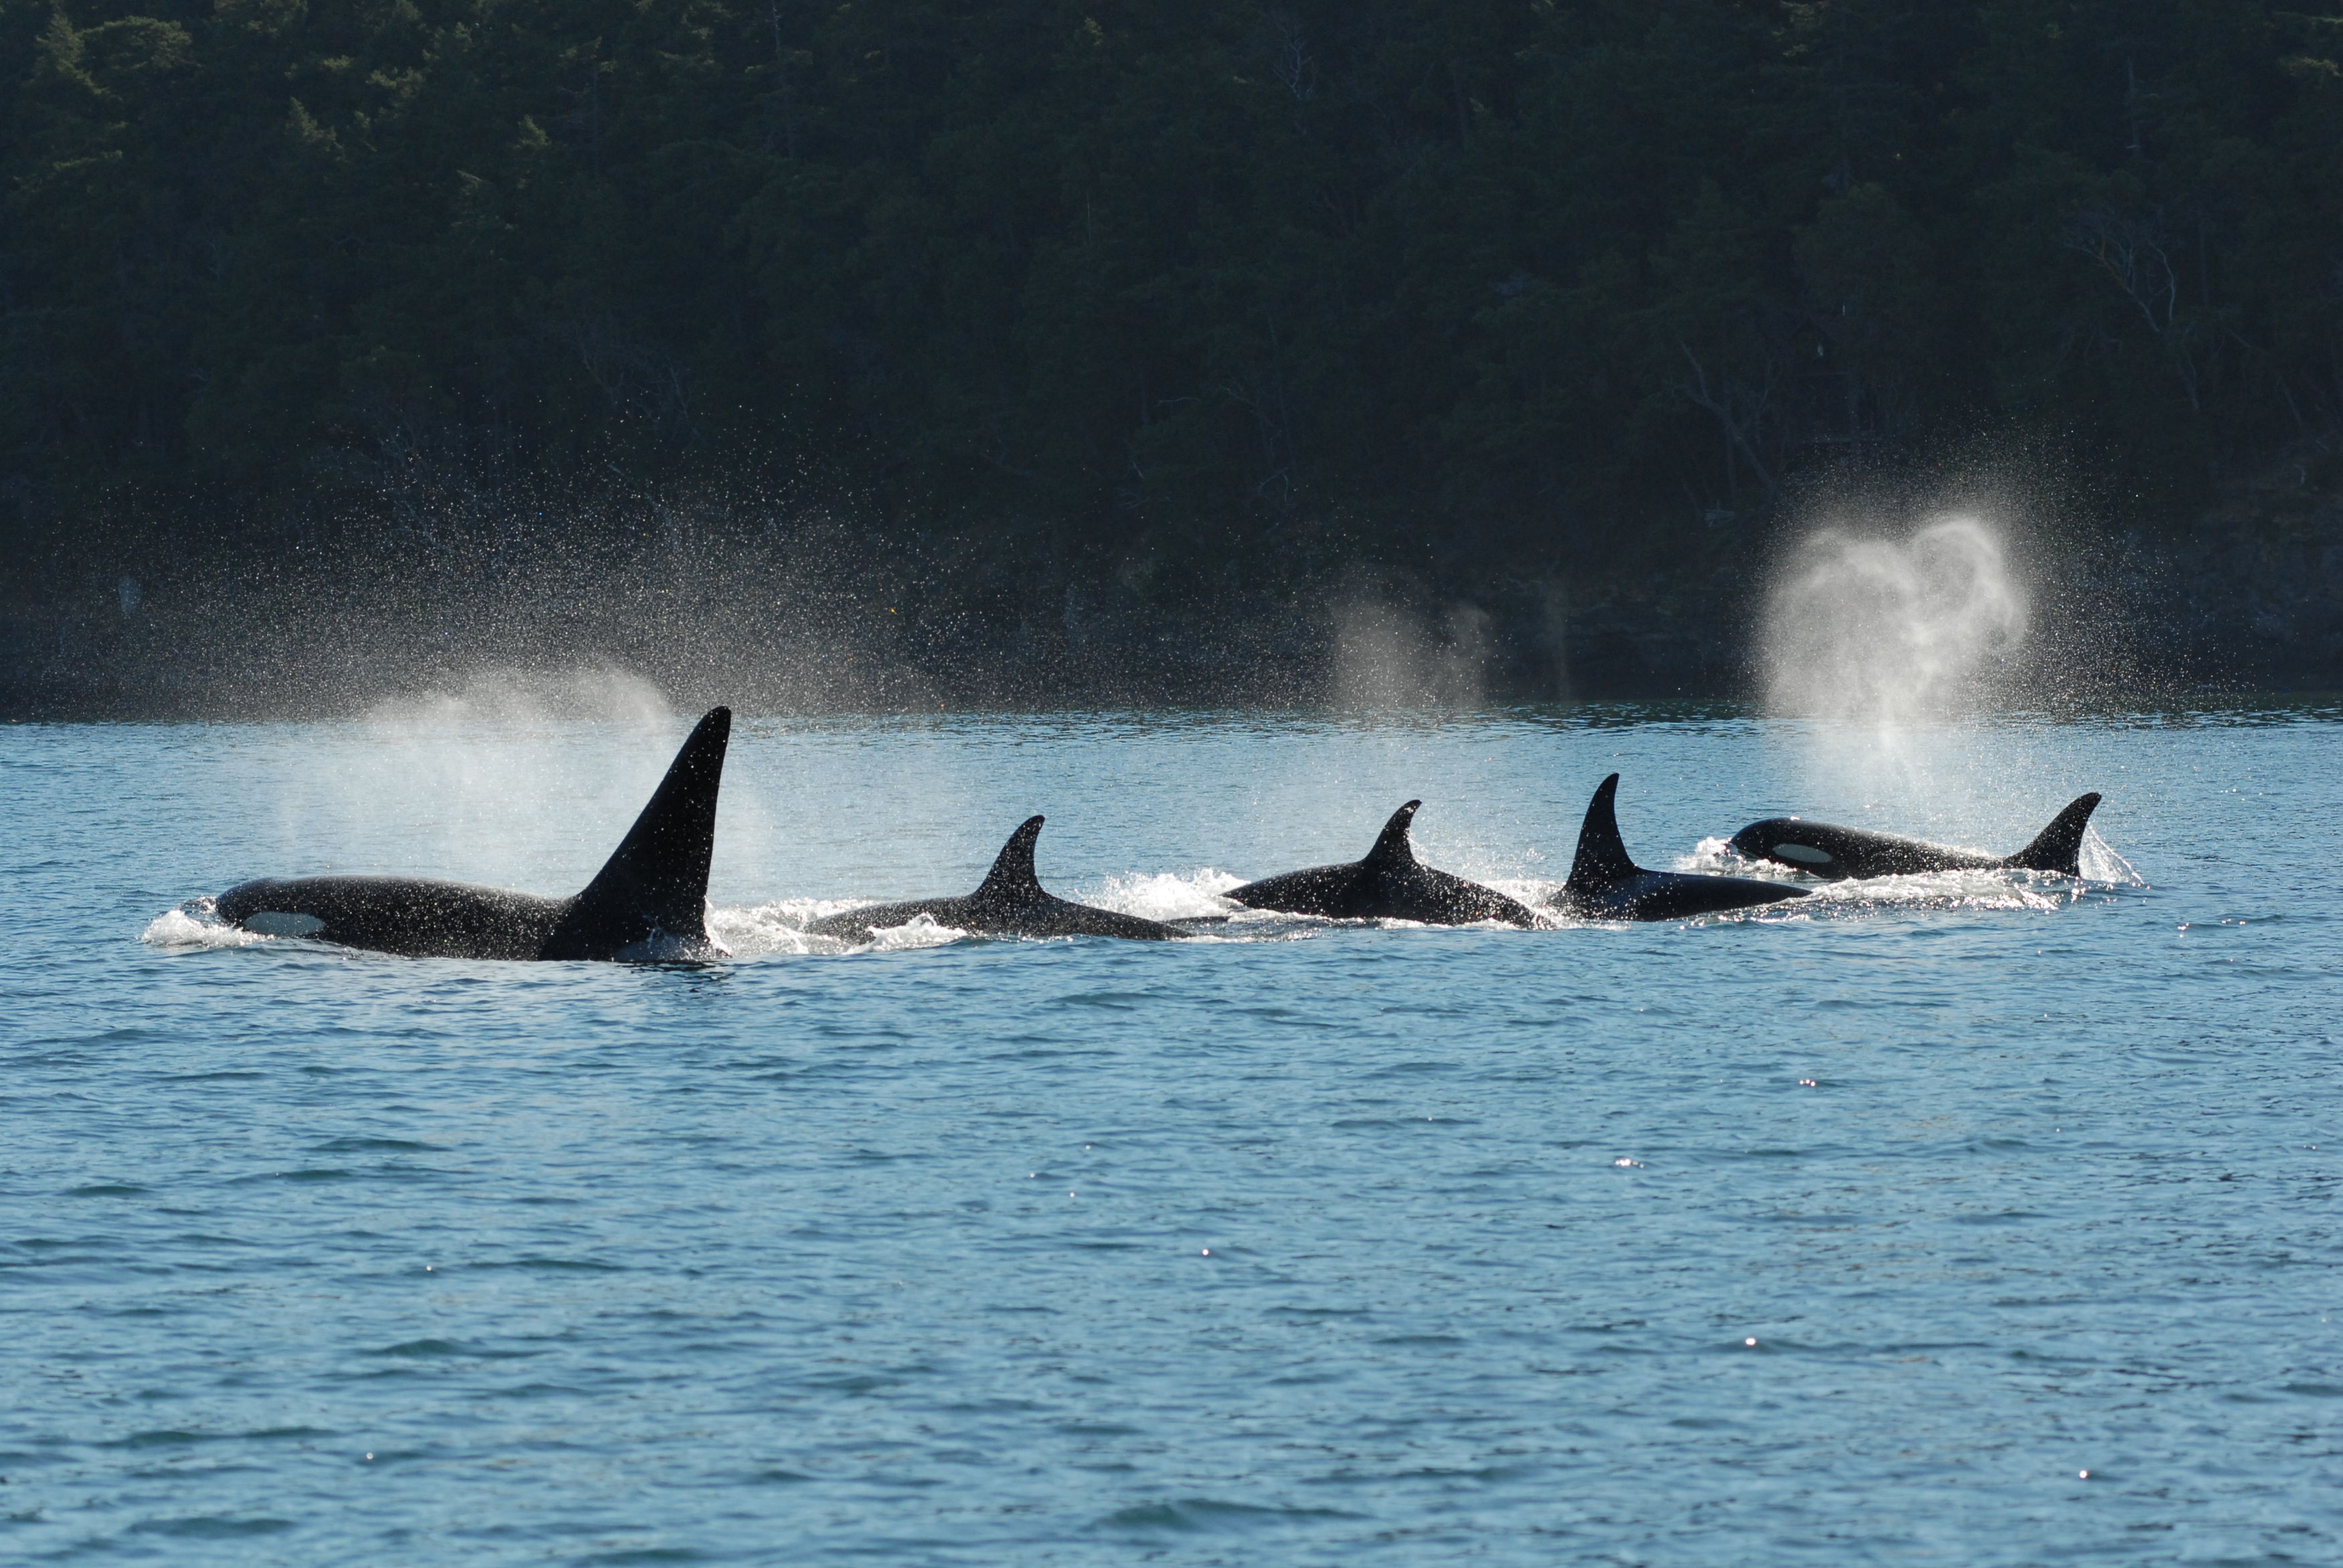 The killer whale that may say 'good day' and 'bye bye'